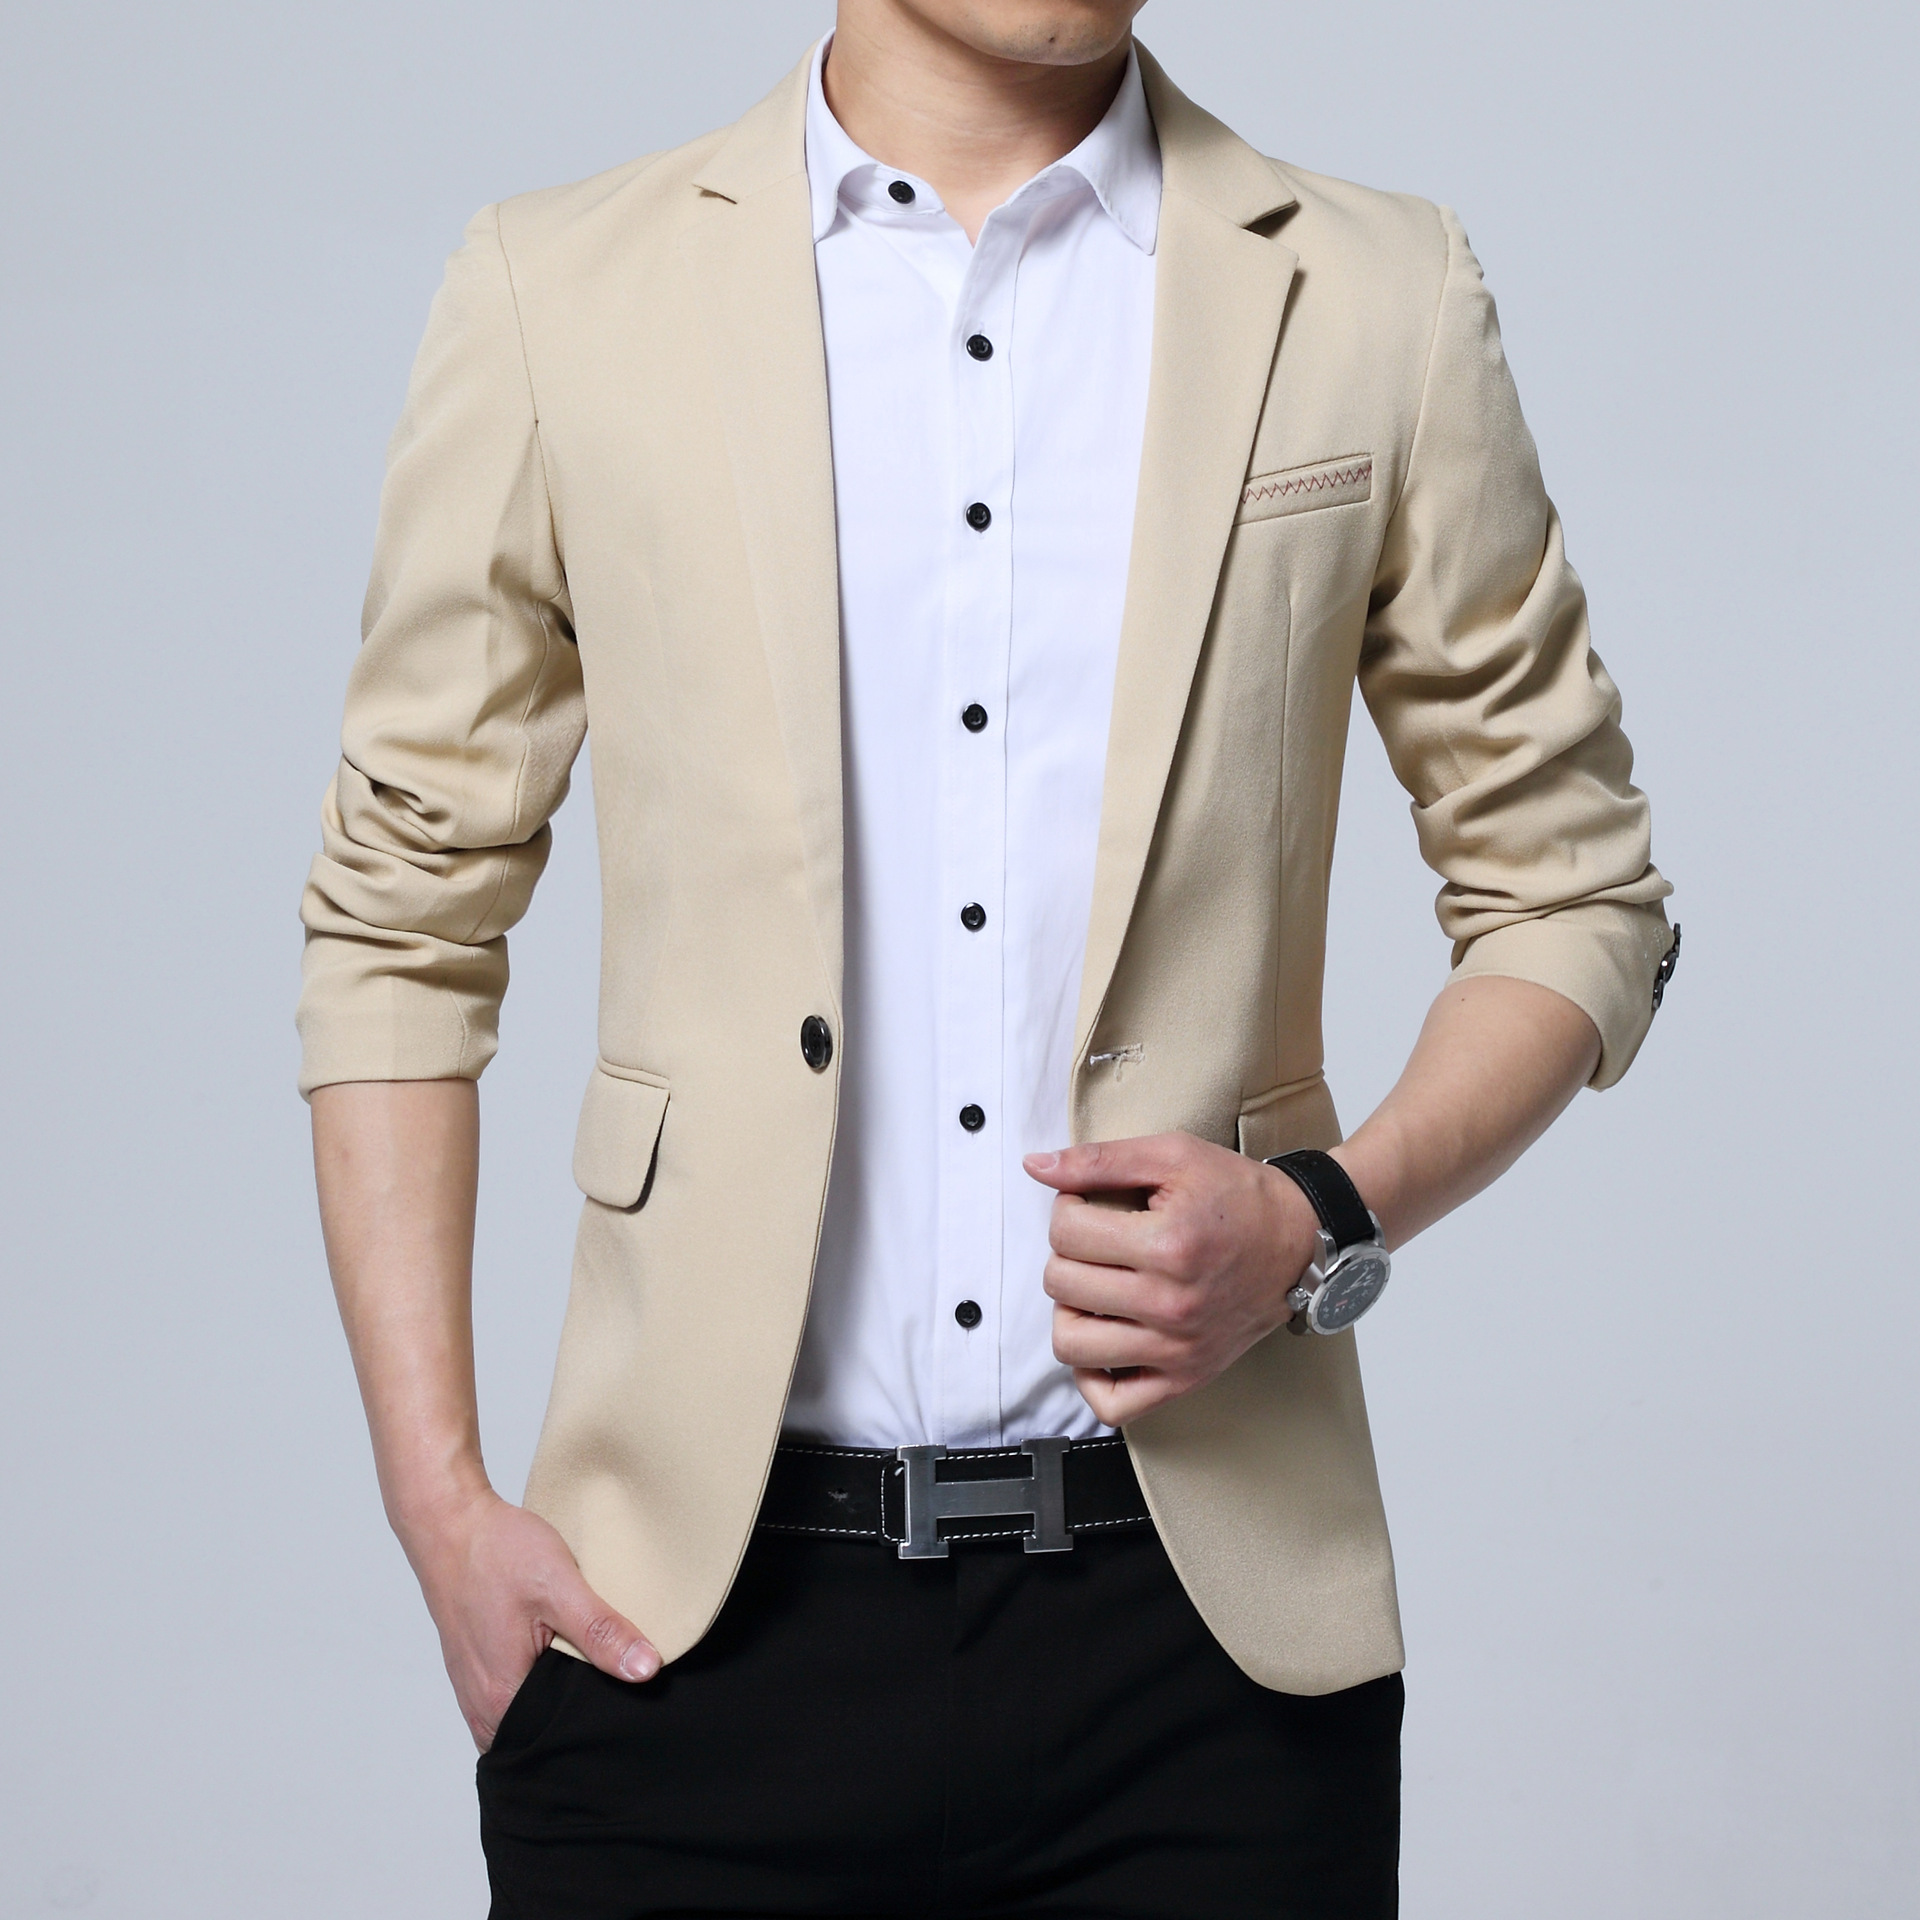 New Spring 2019 Fashion Leisure Suit Men's Cultivate One's Morality In British Youth Pure Color Suit